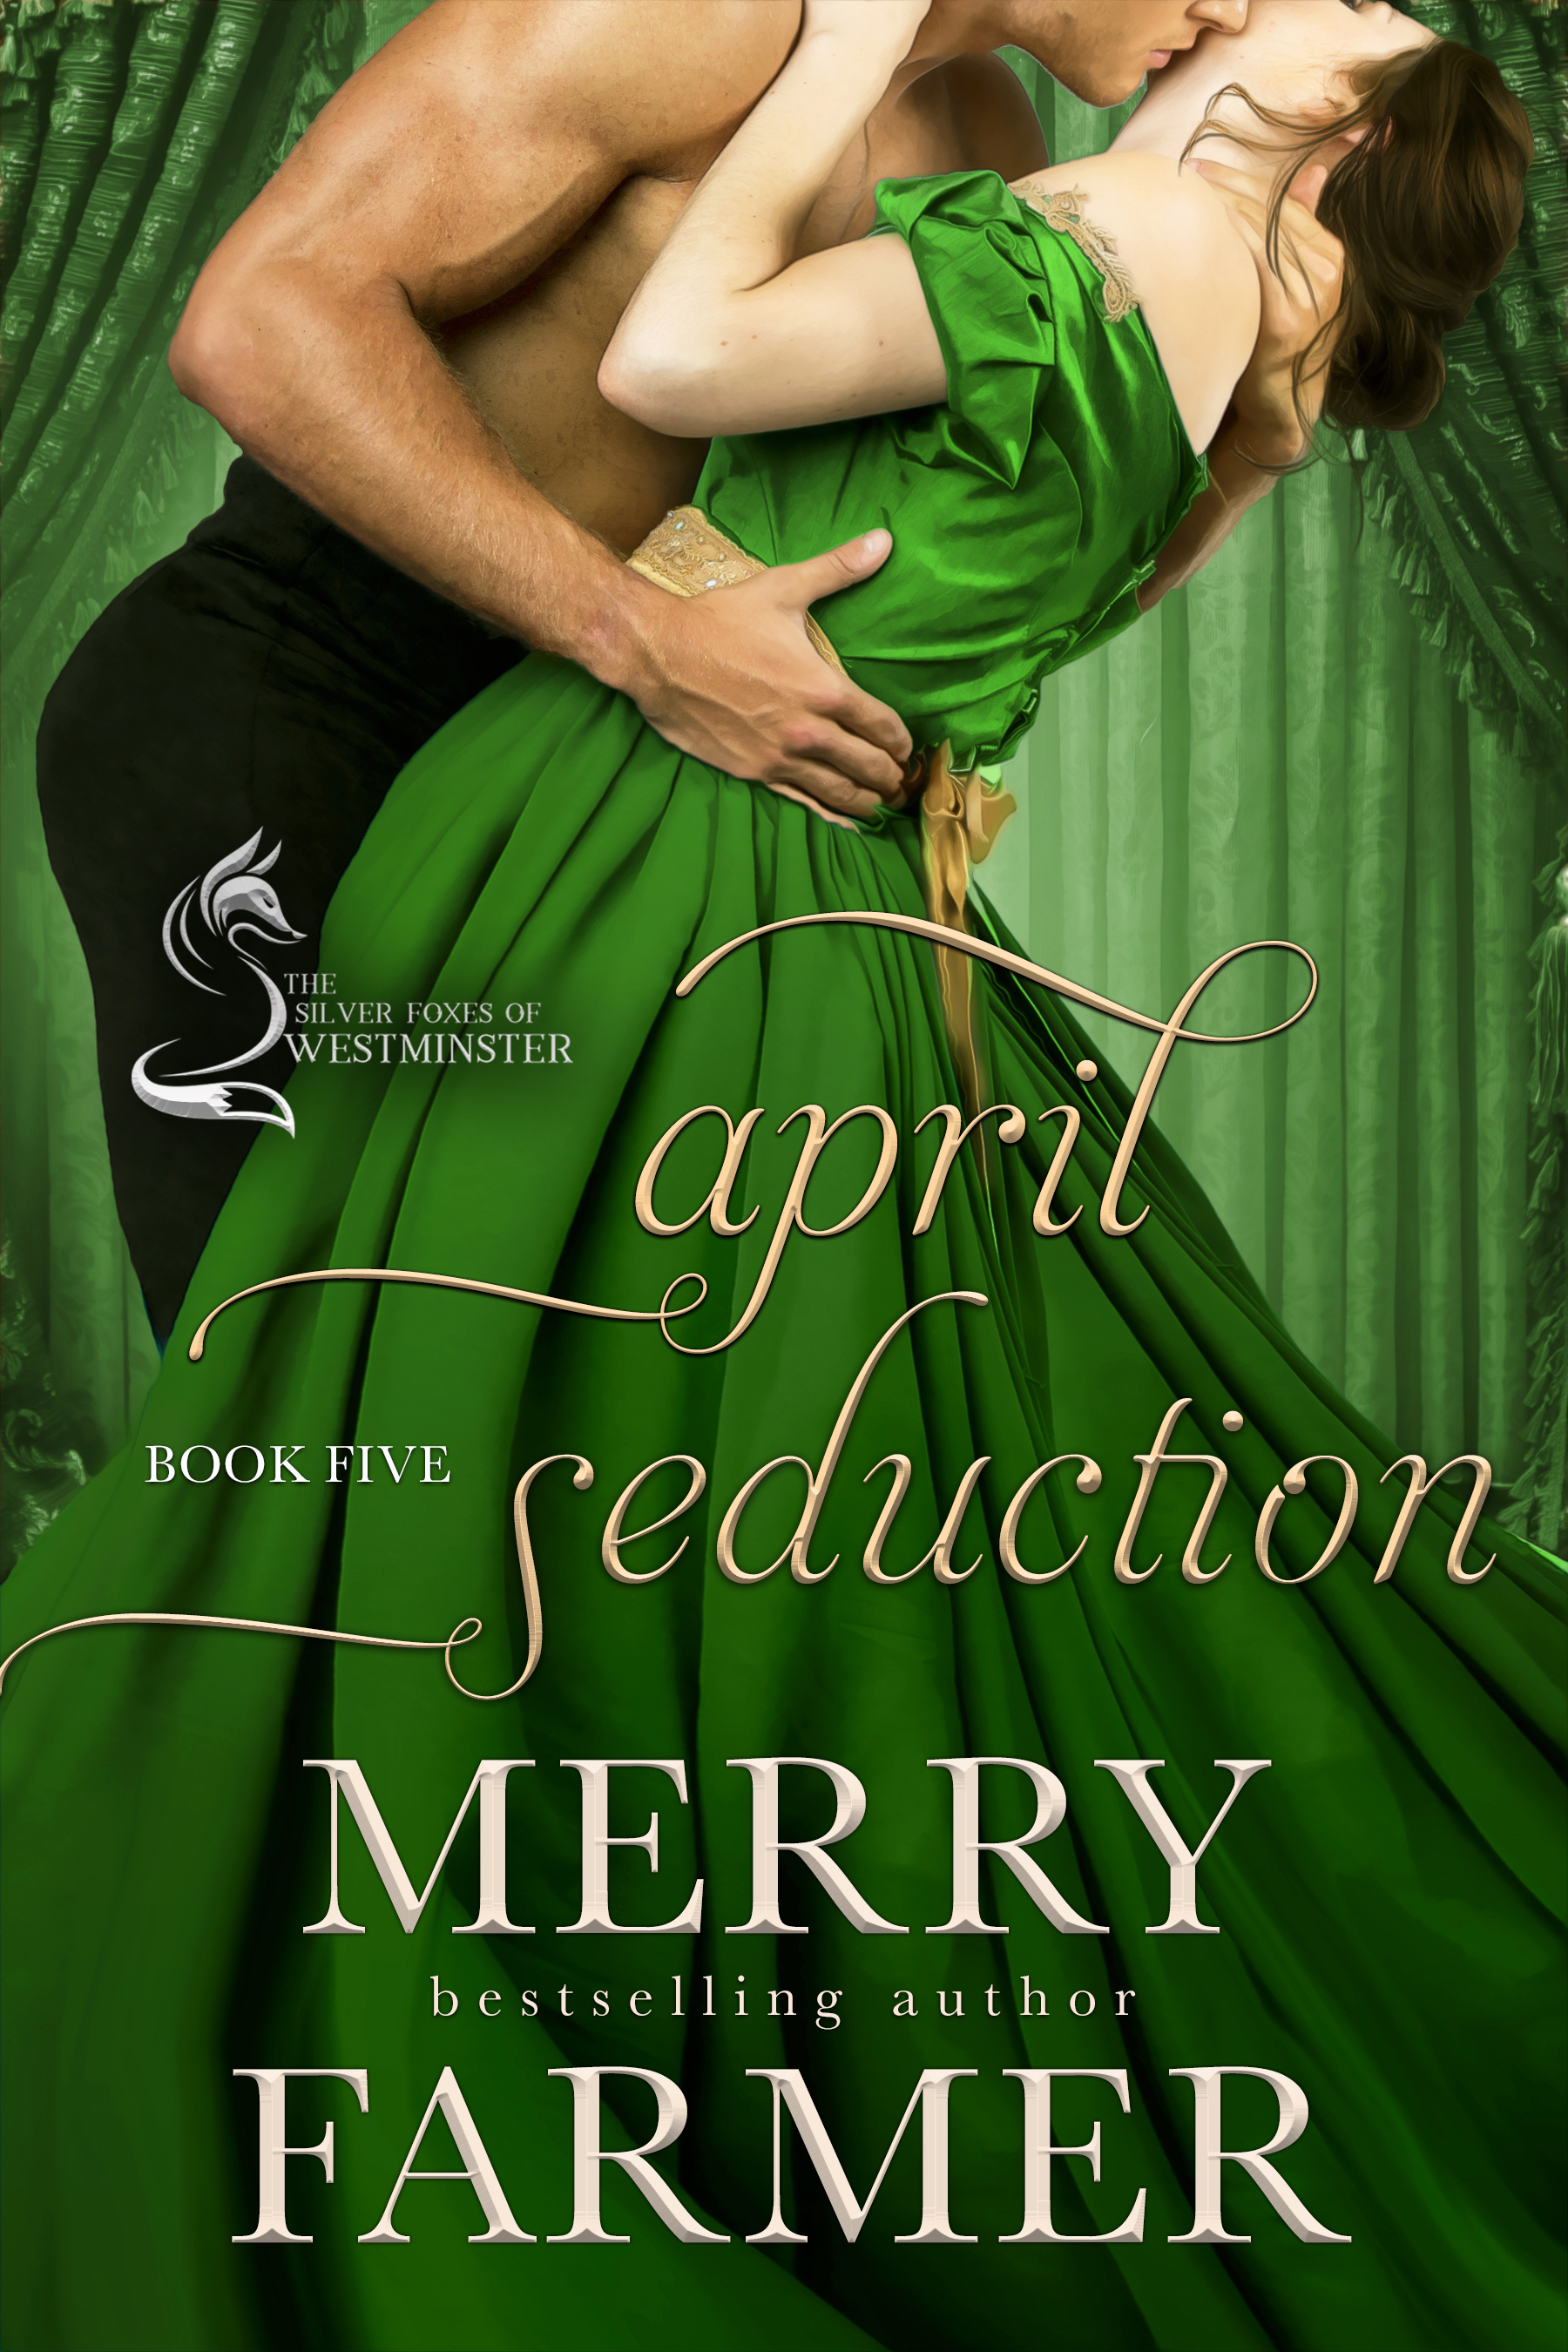 April Seduction (Book Five) - Theirs was a love that defied the rules, sizzled with passion…then fell apart spectacularly….Katya Marlowe, the Countess of Stanhope, was forced into a loveless marriage when she was only eighteen, became a mother of three before she was twenty-three, and a widow by the age of twenty-four, and before she hit thirty, she developed a reputation as a siren and a woman of power. But as clever and seductive as she has been painted to be, her heart has only belonged to one man.Malcolm Campbell has been a fighter his whole life, willing to go to extreme lengths to support the causes he believes in. Ruthless, arrogant, and ferocious, he has dedicated his life to eradicating anyone who harms women, particularly the villainous Lord Shayles. But for all his fight, his heart aches for the one woman who he has never been able to secure, Katya.When Katya and Malcolm team up in a final campaign to bring down Shayles for good, old passions and old wounds bleed to the surface. But can they keep their burning desire for each other in check? Can they put their differences aside long enough to work together, or will the fire of everything that has smoldered between them for nearly twenty years consume them? Will they learn to forgive the stings of the past and come together at last?PLEASE BE ADVISED: Steam Level – Very Hot